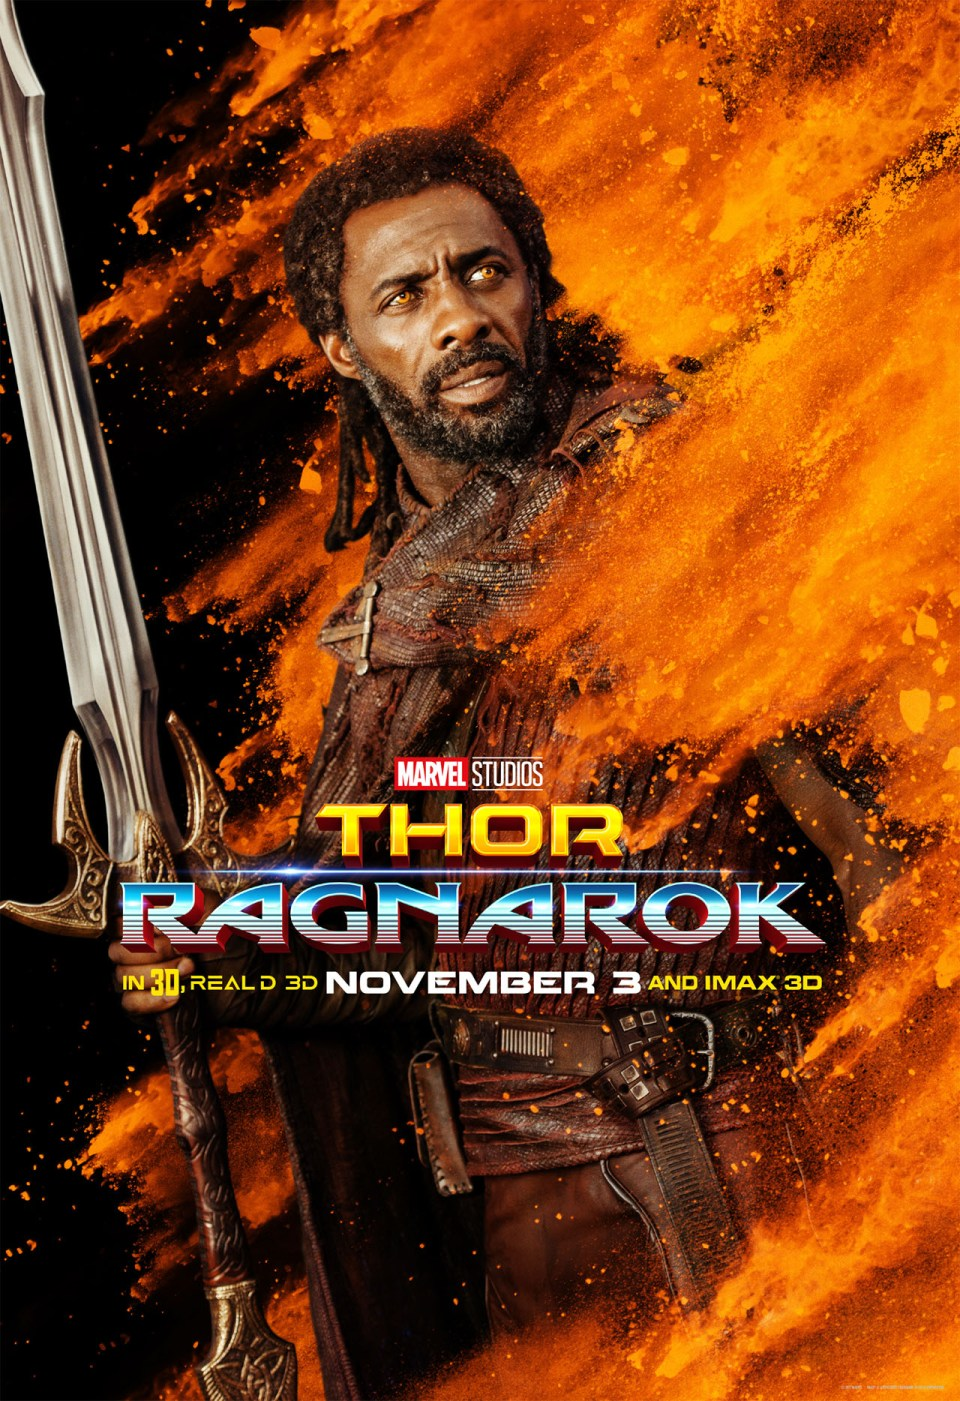 8-wild-thor-ragnarok-character-posters-give-the-heroes-and-villains-an-explosion-of-color5.jpeg